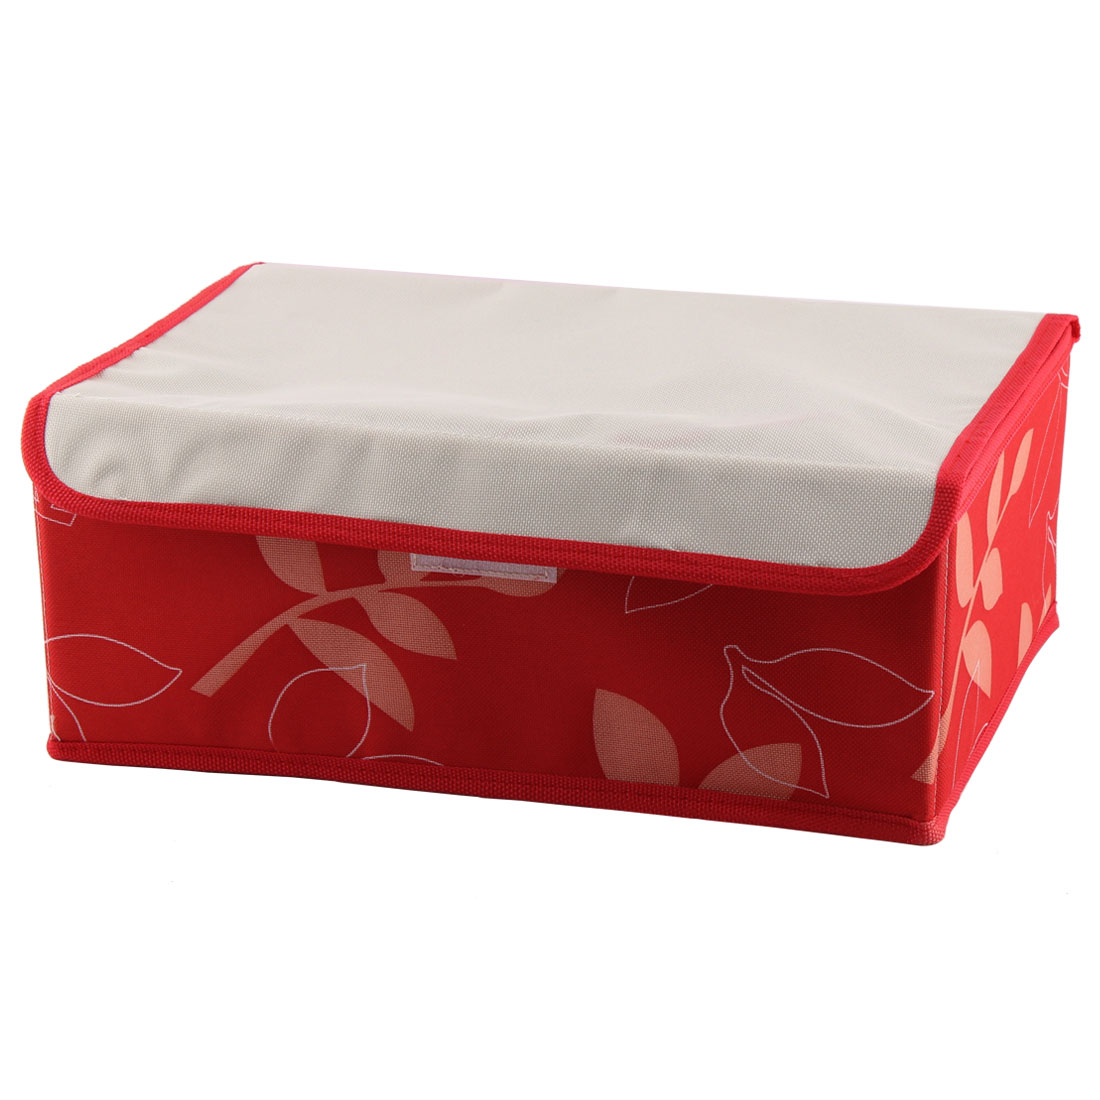 Bra Underwear Socks Floral Pattern 8 Compartments Foldable Storage Box Red Beige